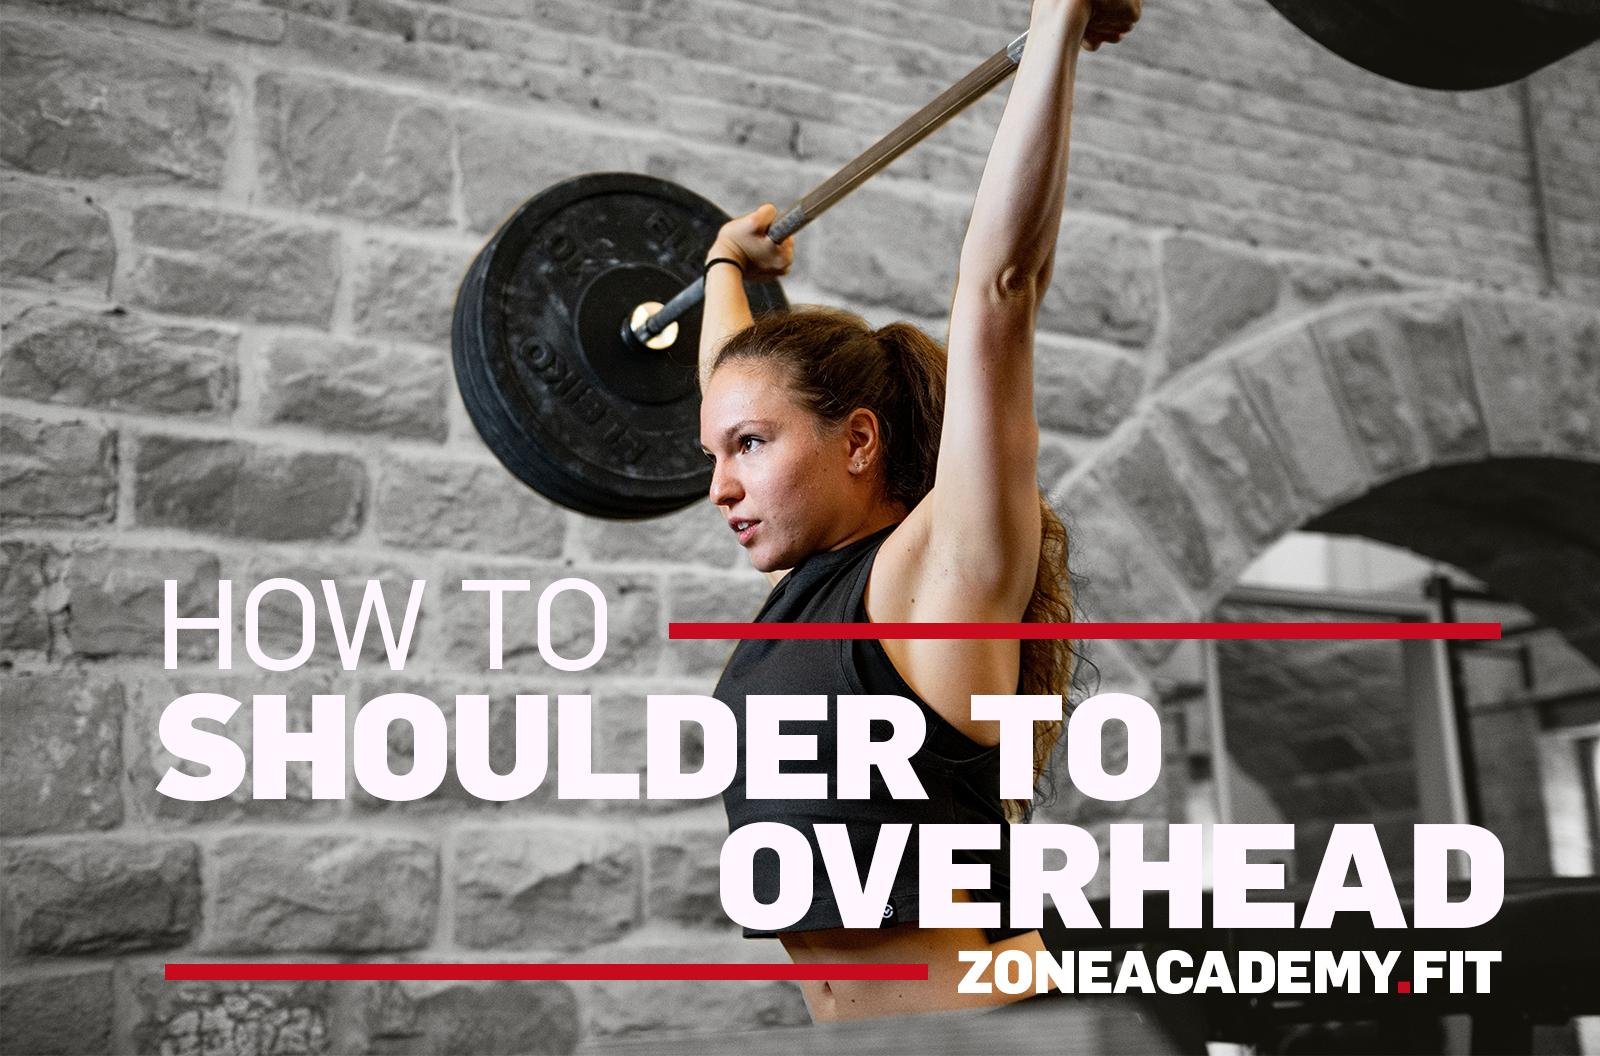 HOWTO Shoulder to overhead